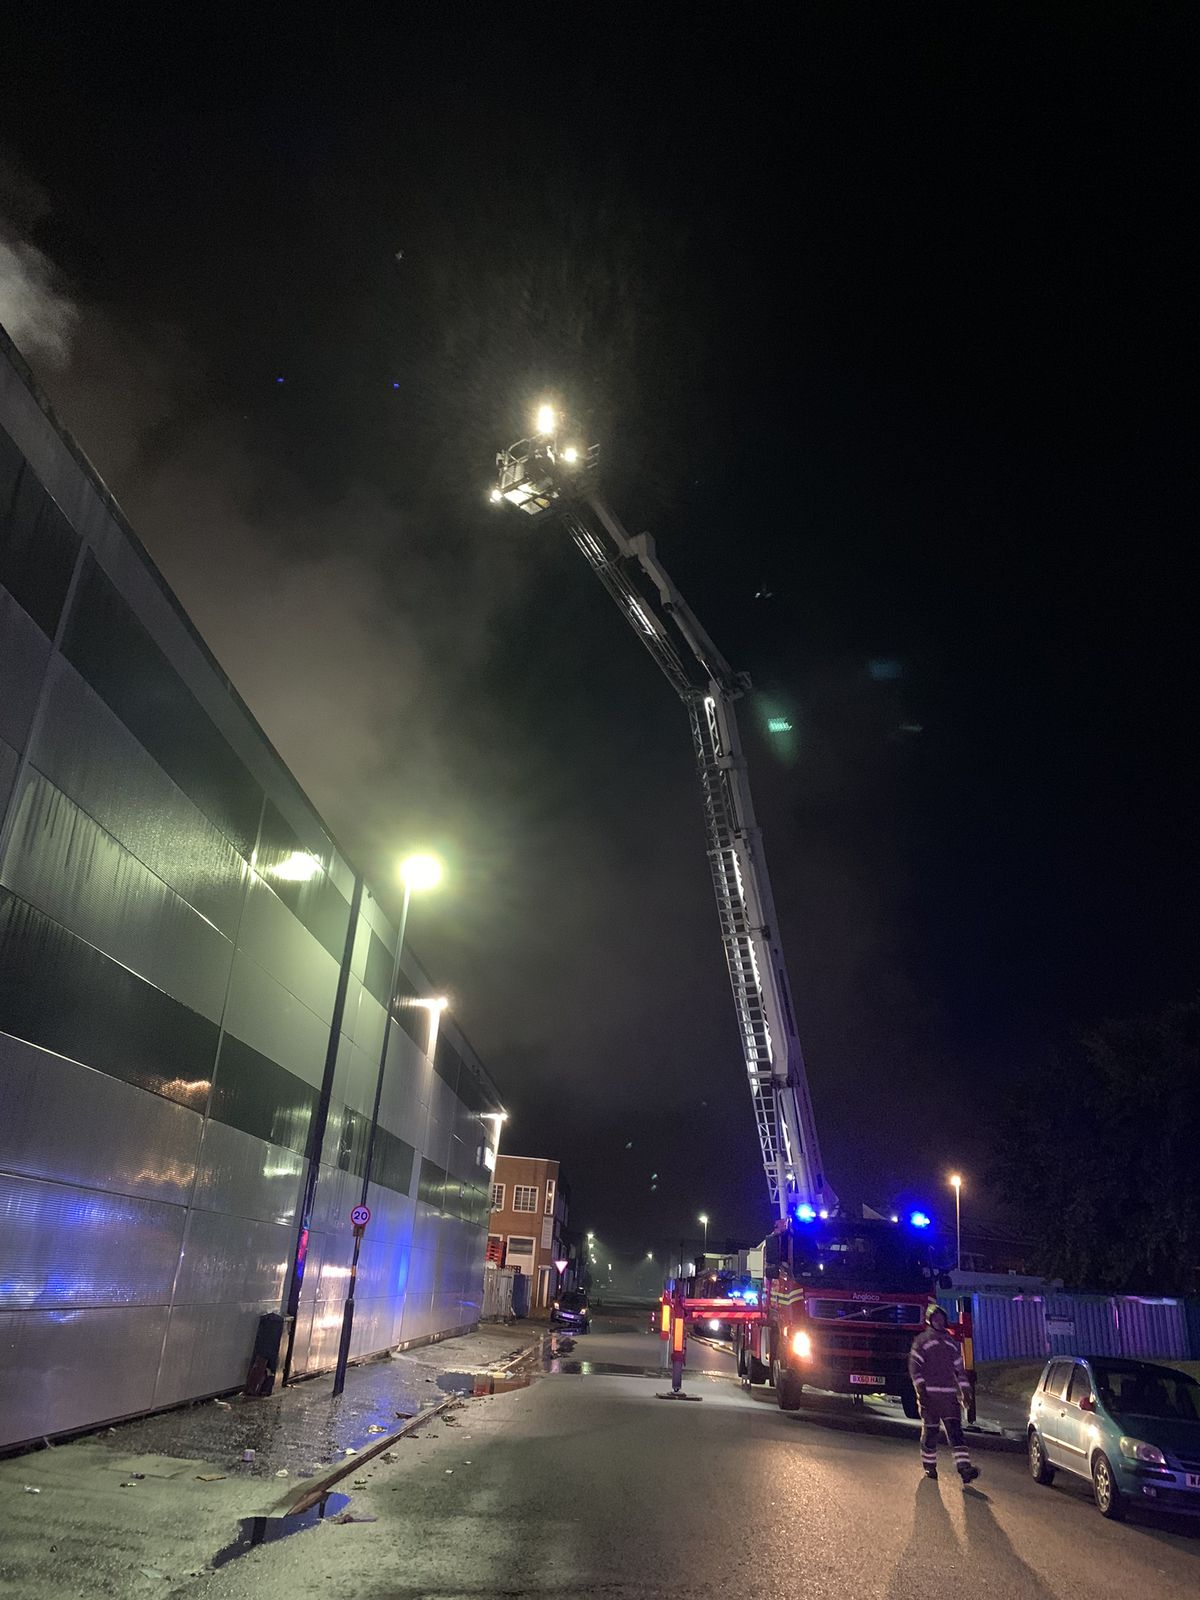 At its peak 70 firefighters were tackling the blaze. Photo: West Midlands Fire Service